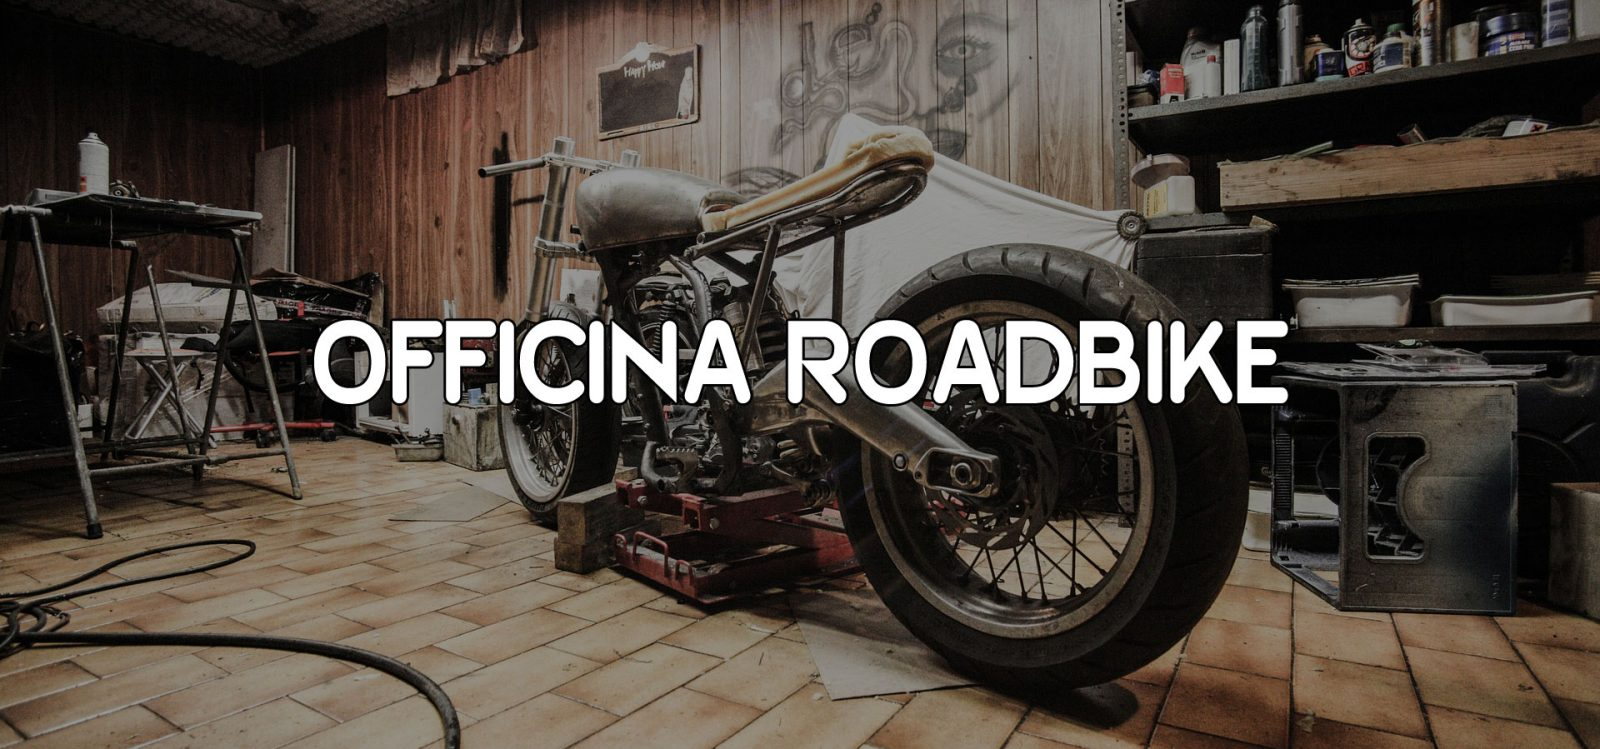 Officina Roadbike